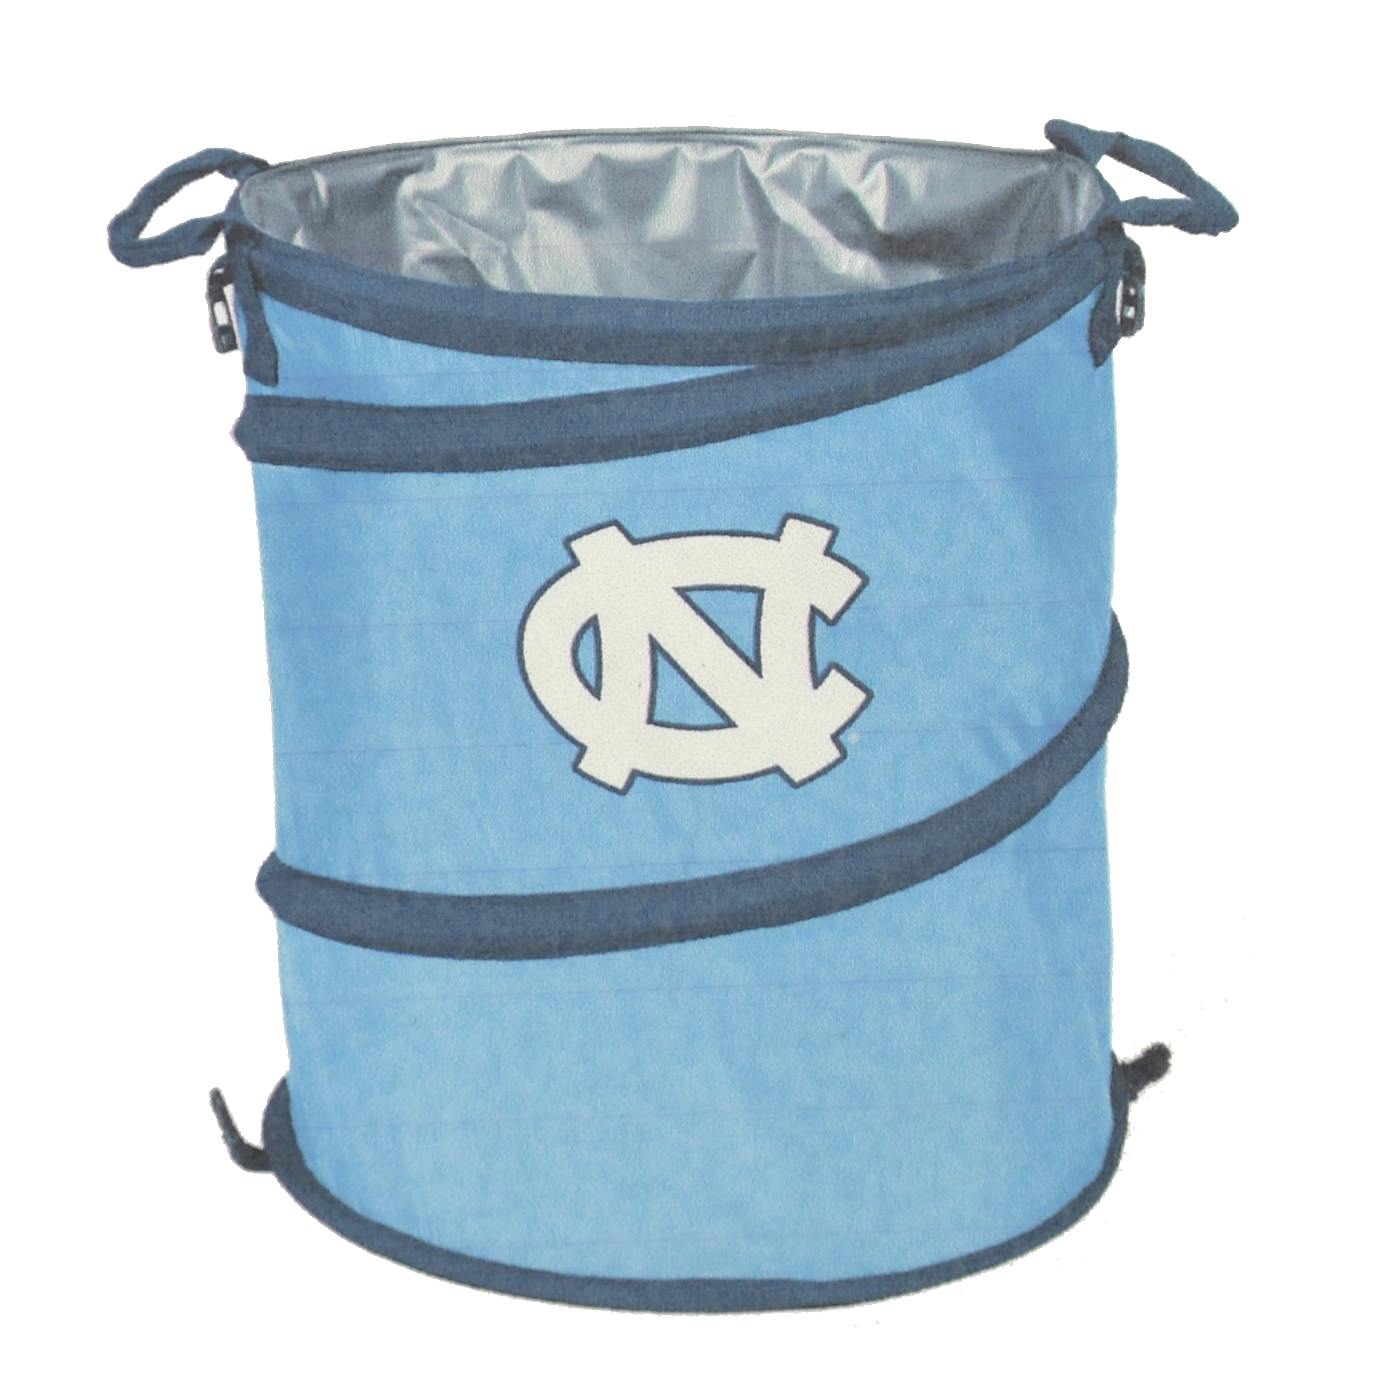 Collapsible Trash Cans Johnny T Shirt North Carolina Tar Heels Collapsible